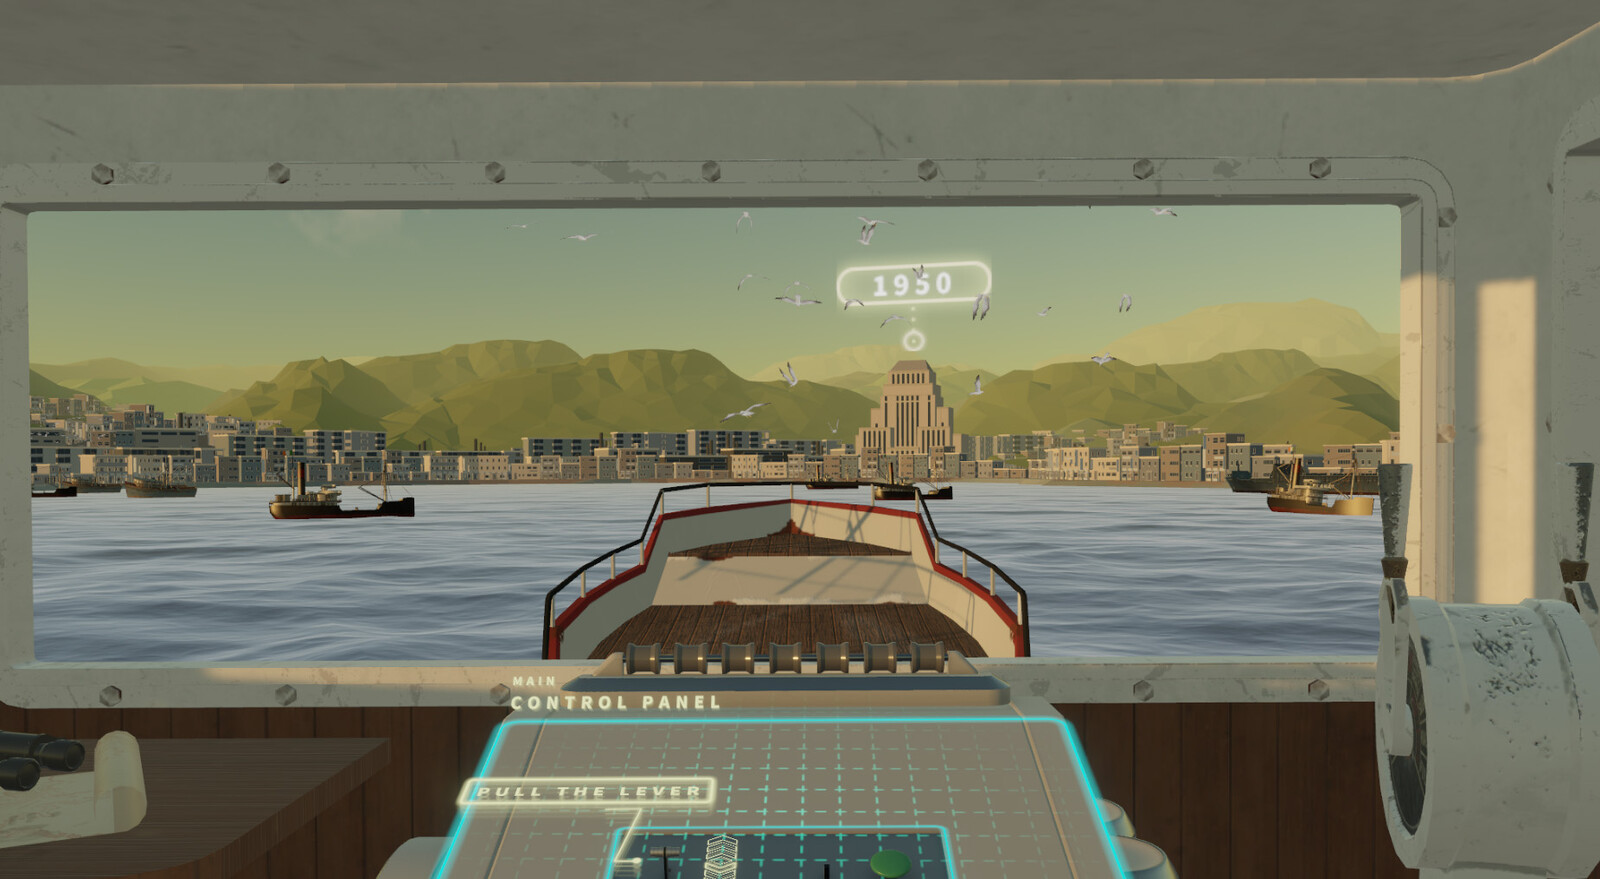 Moving to 1950s Hongkong in a ship with interactive UI